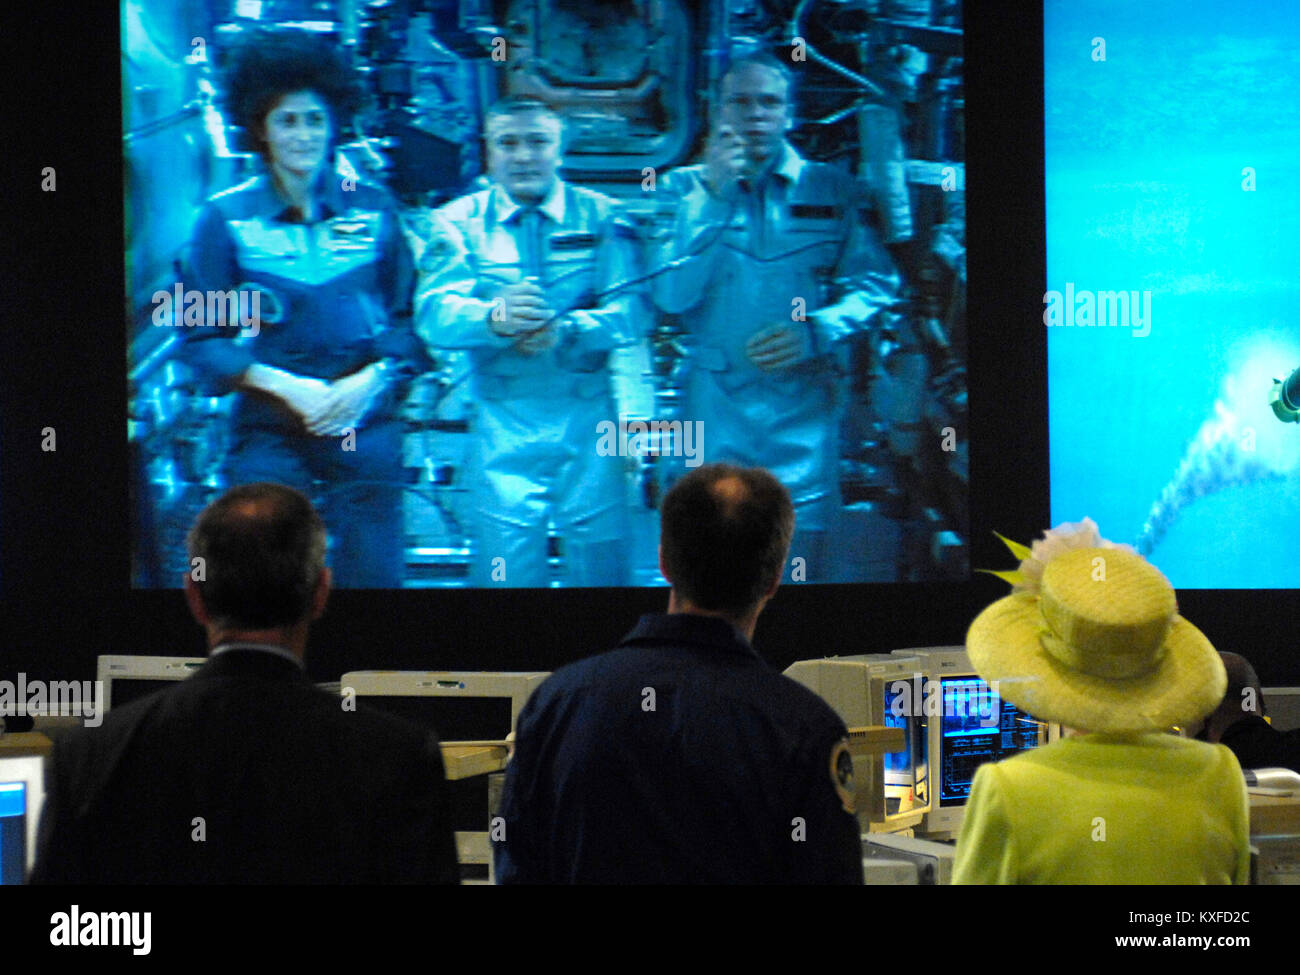 Queen Elizabeth, right, talks to the International Space Station crew along with NASA Astronaut Michael Foale, center, - Stock Image